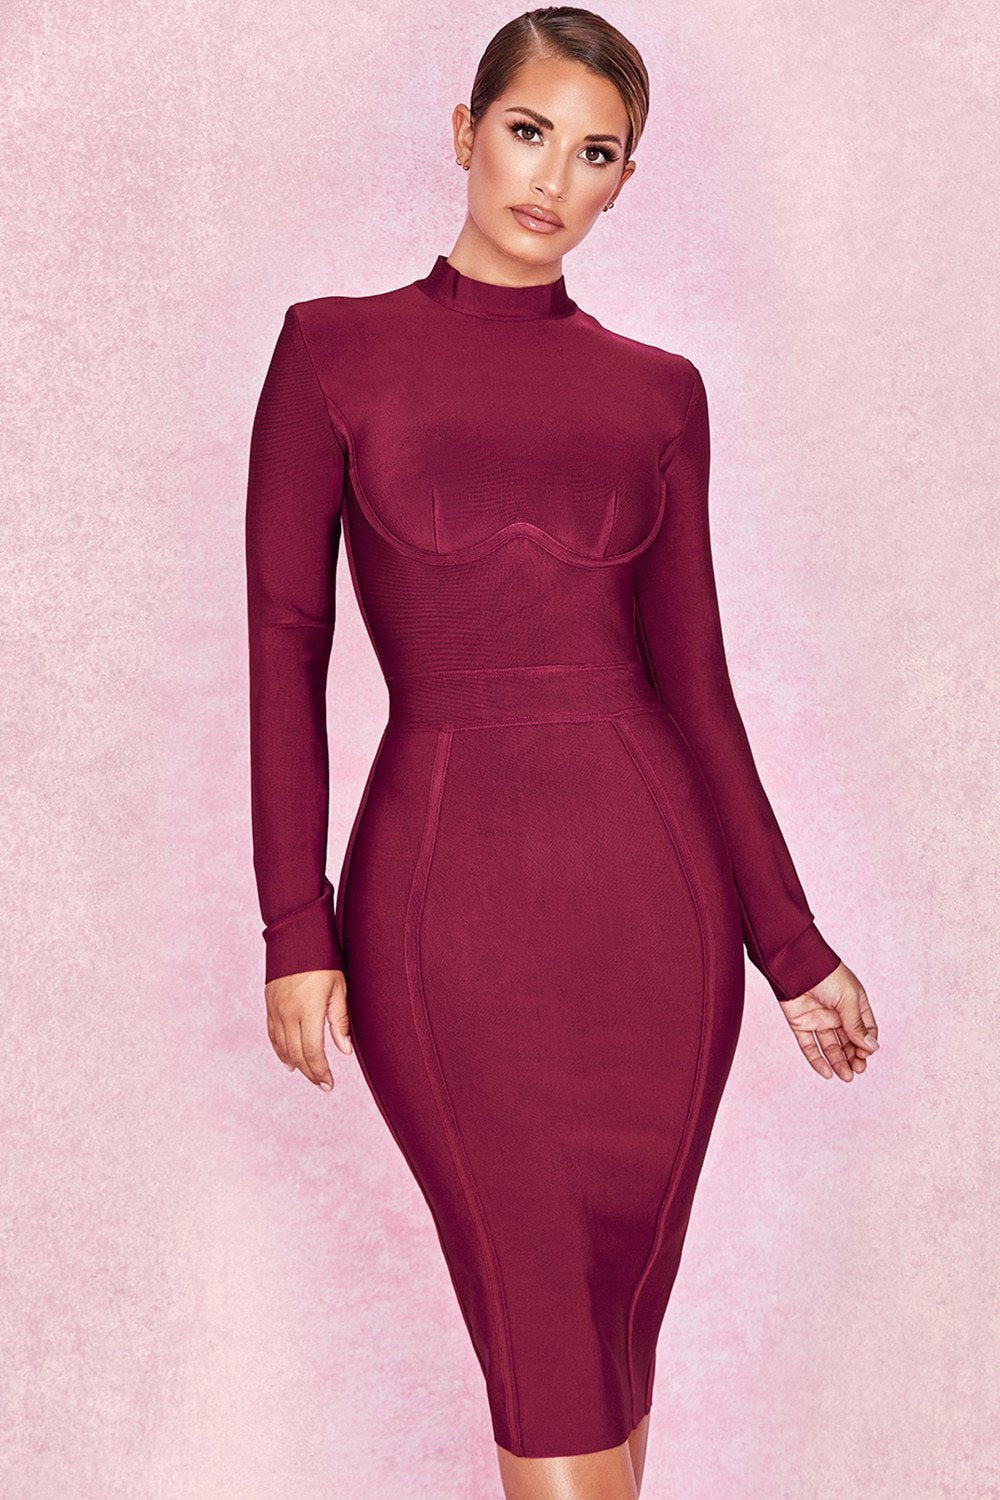 Wine Bandage Long Sleeve Dress - Sale